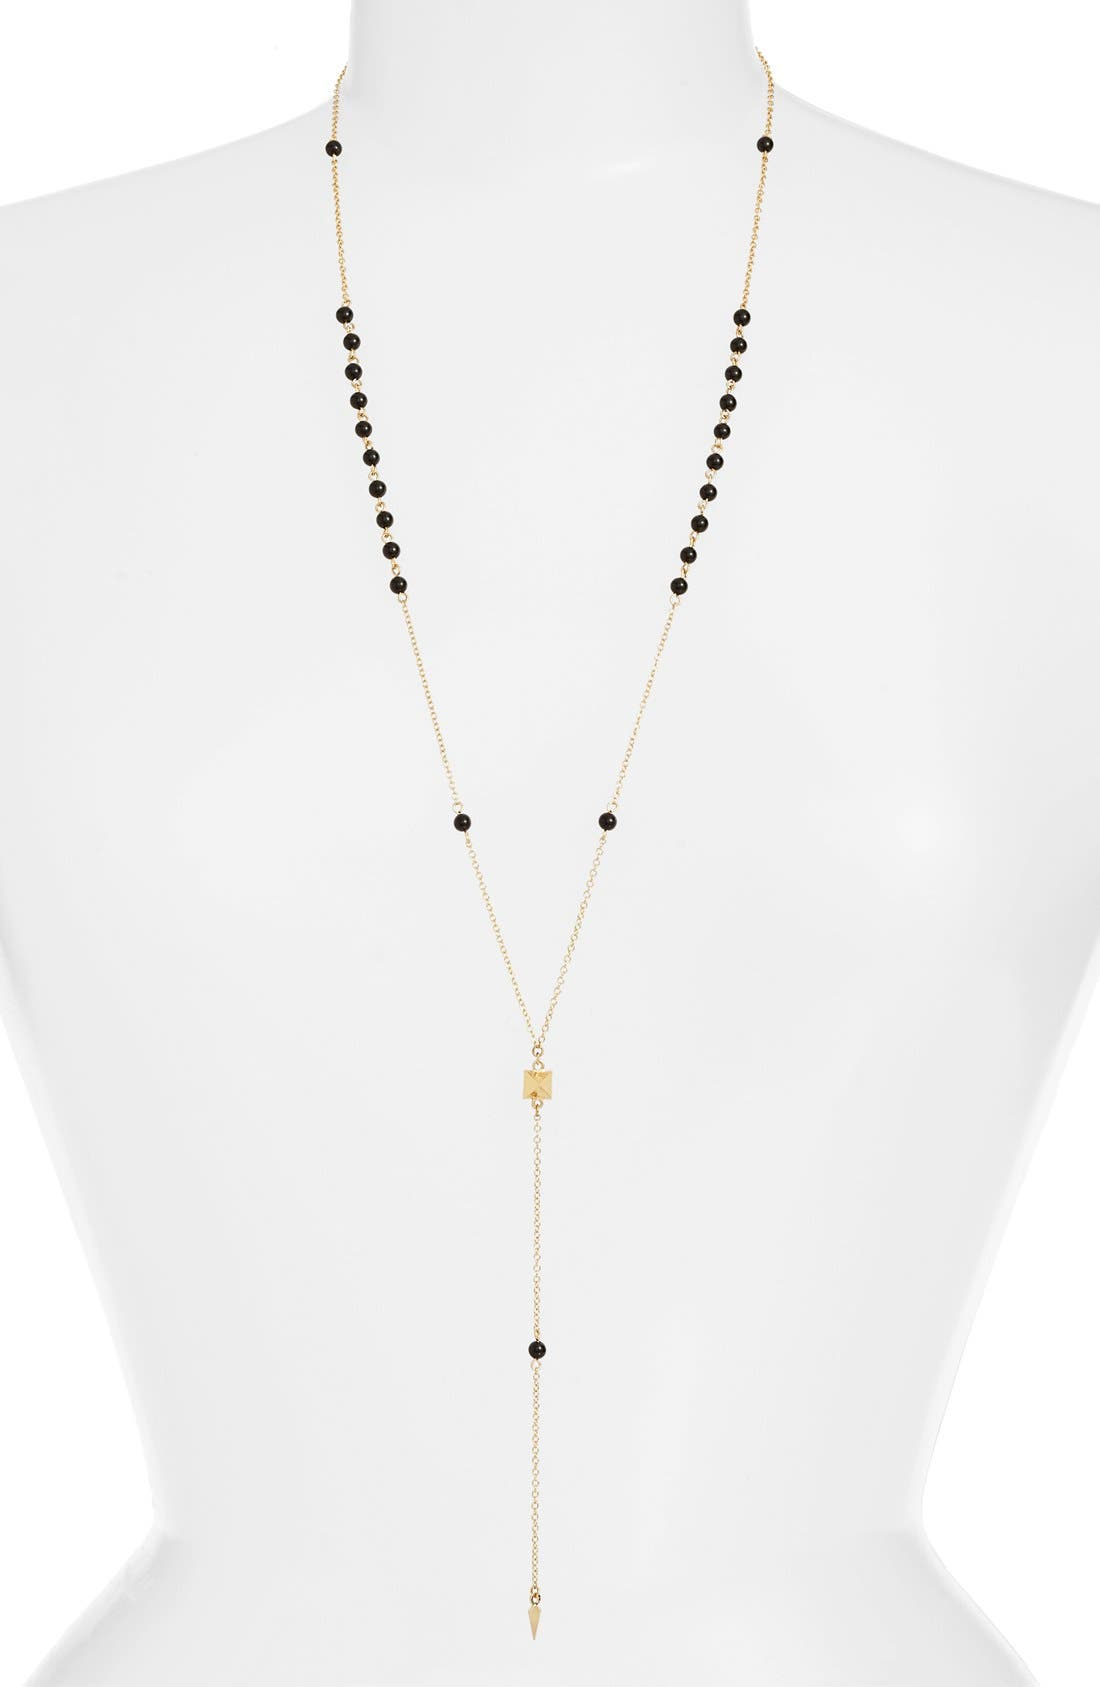 Main Image - Ettika 'Waiting in Line' Beaded Onyx Y-Chain Necklace